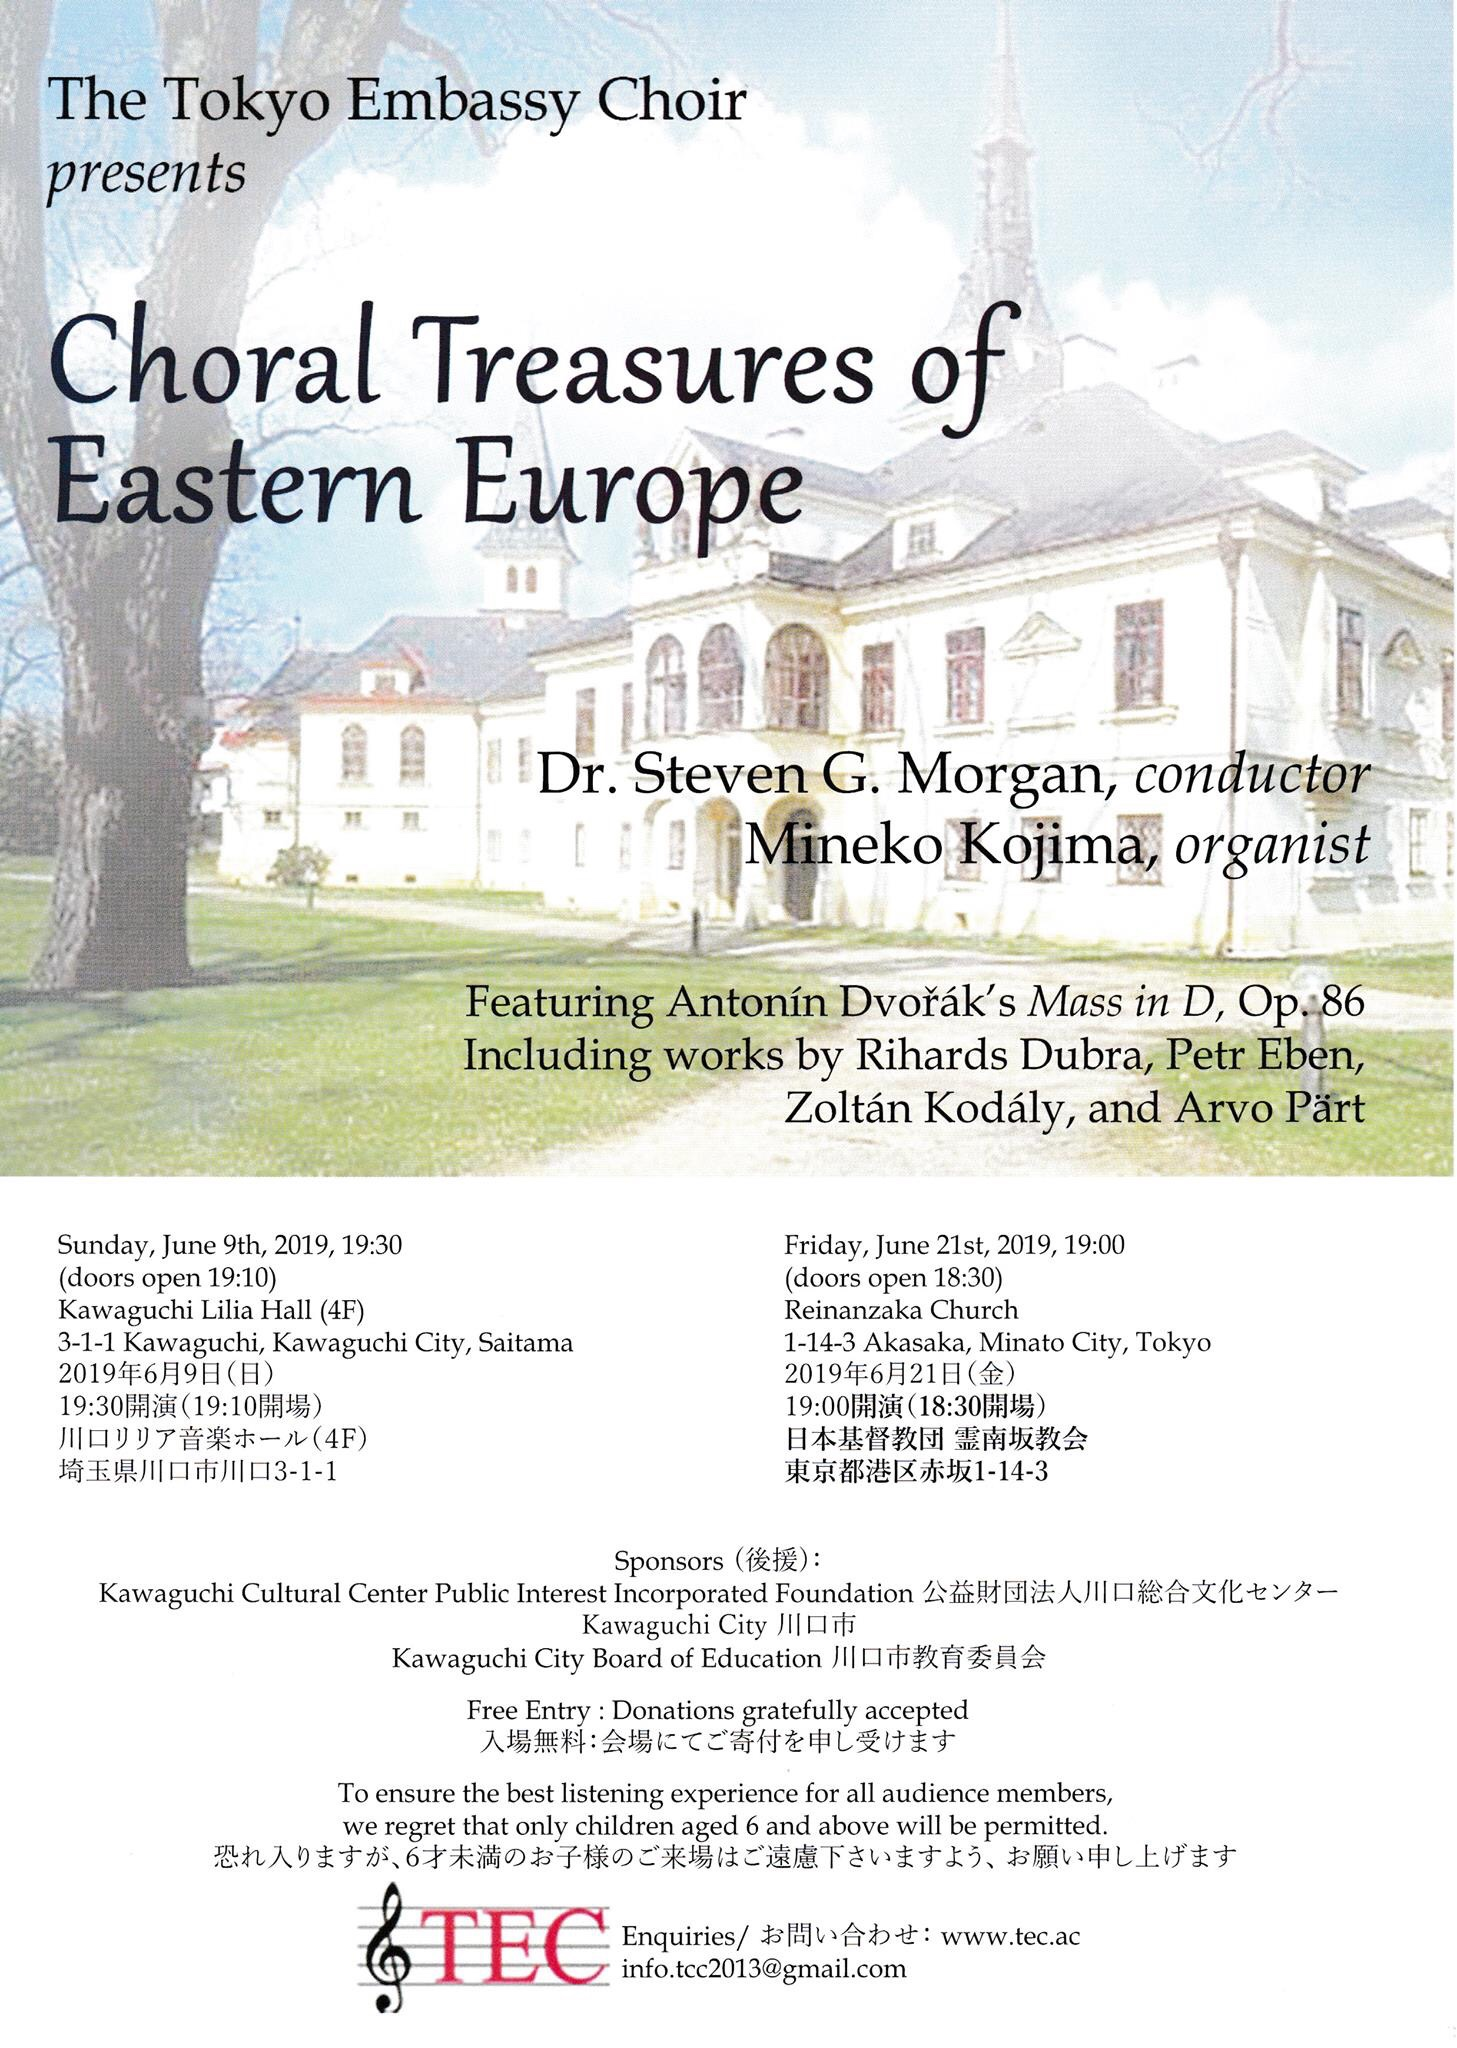 Choral Treasures of Easteran Europe